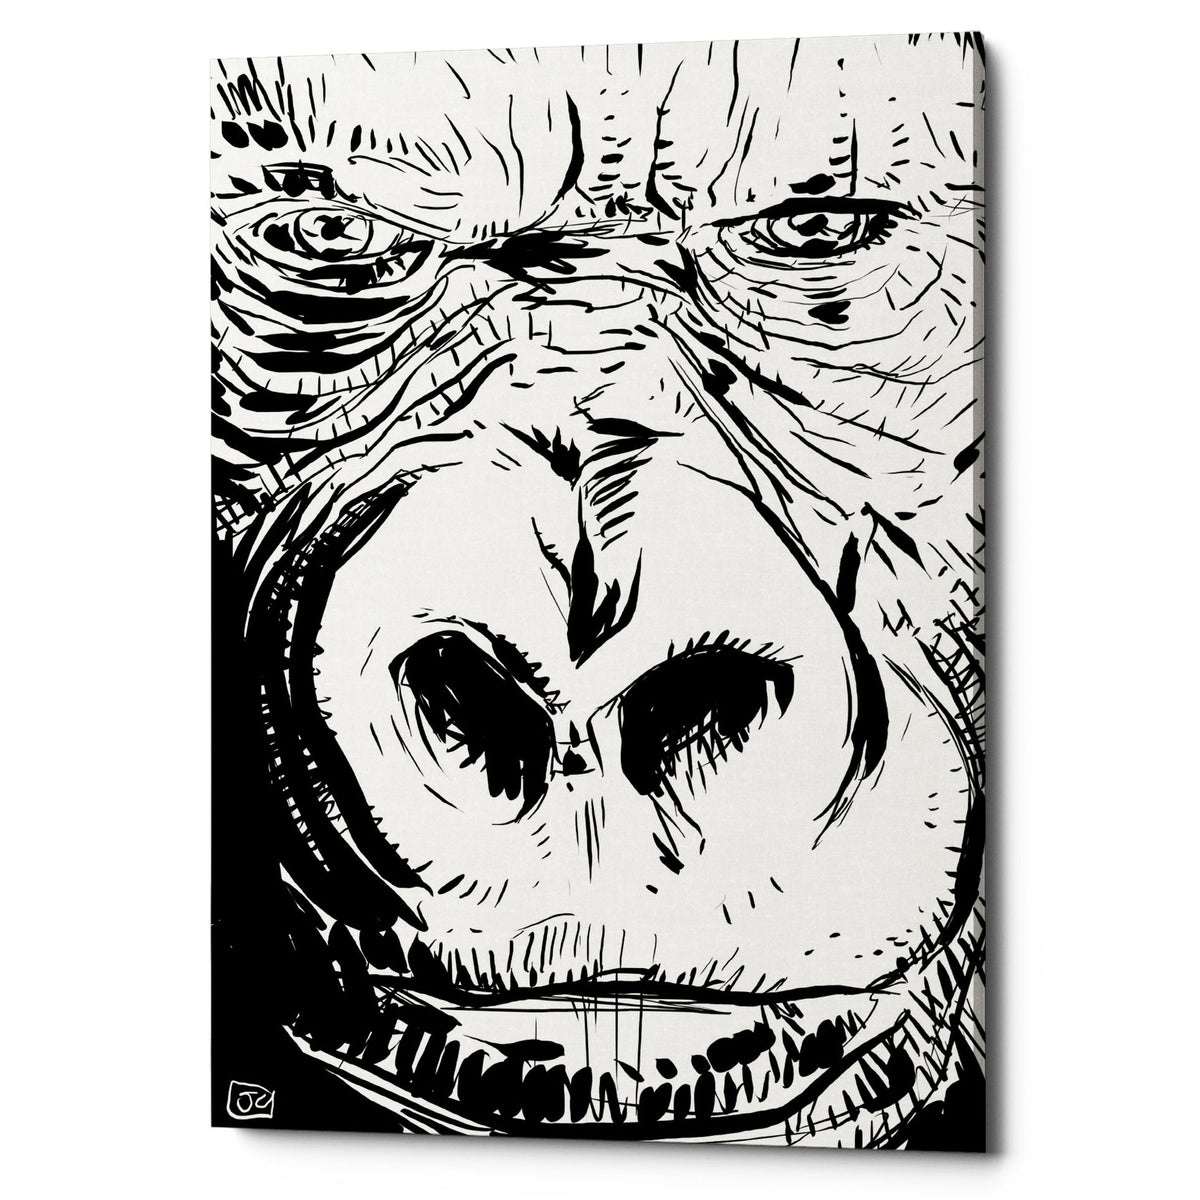 "Epic Graffiti ""Gorilla"" by Giuseppe Cristiano, Giclee Canvas Wall Art"